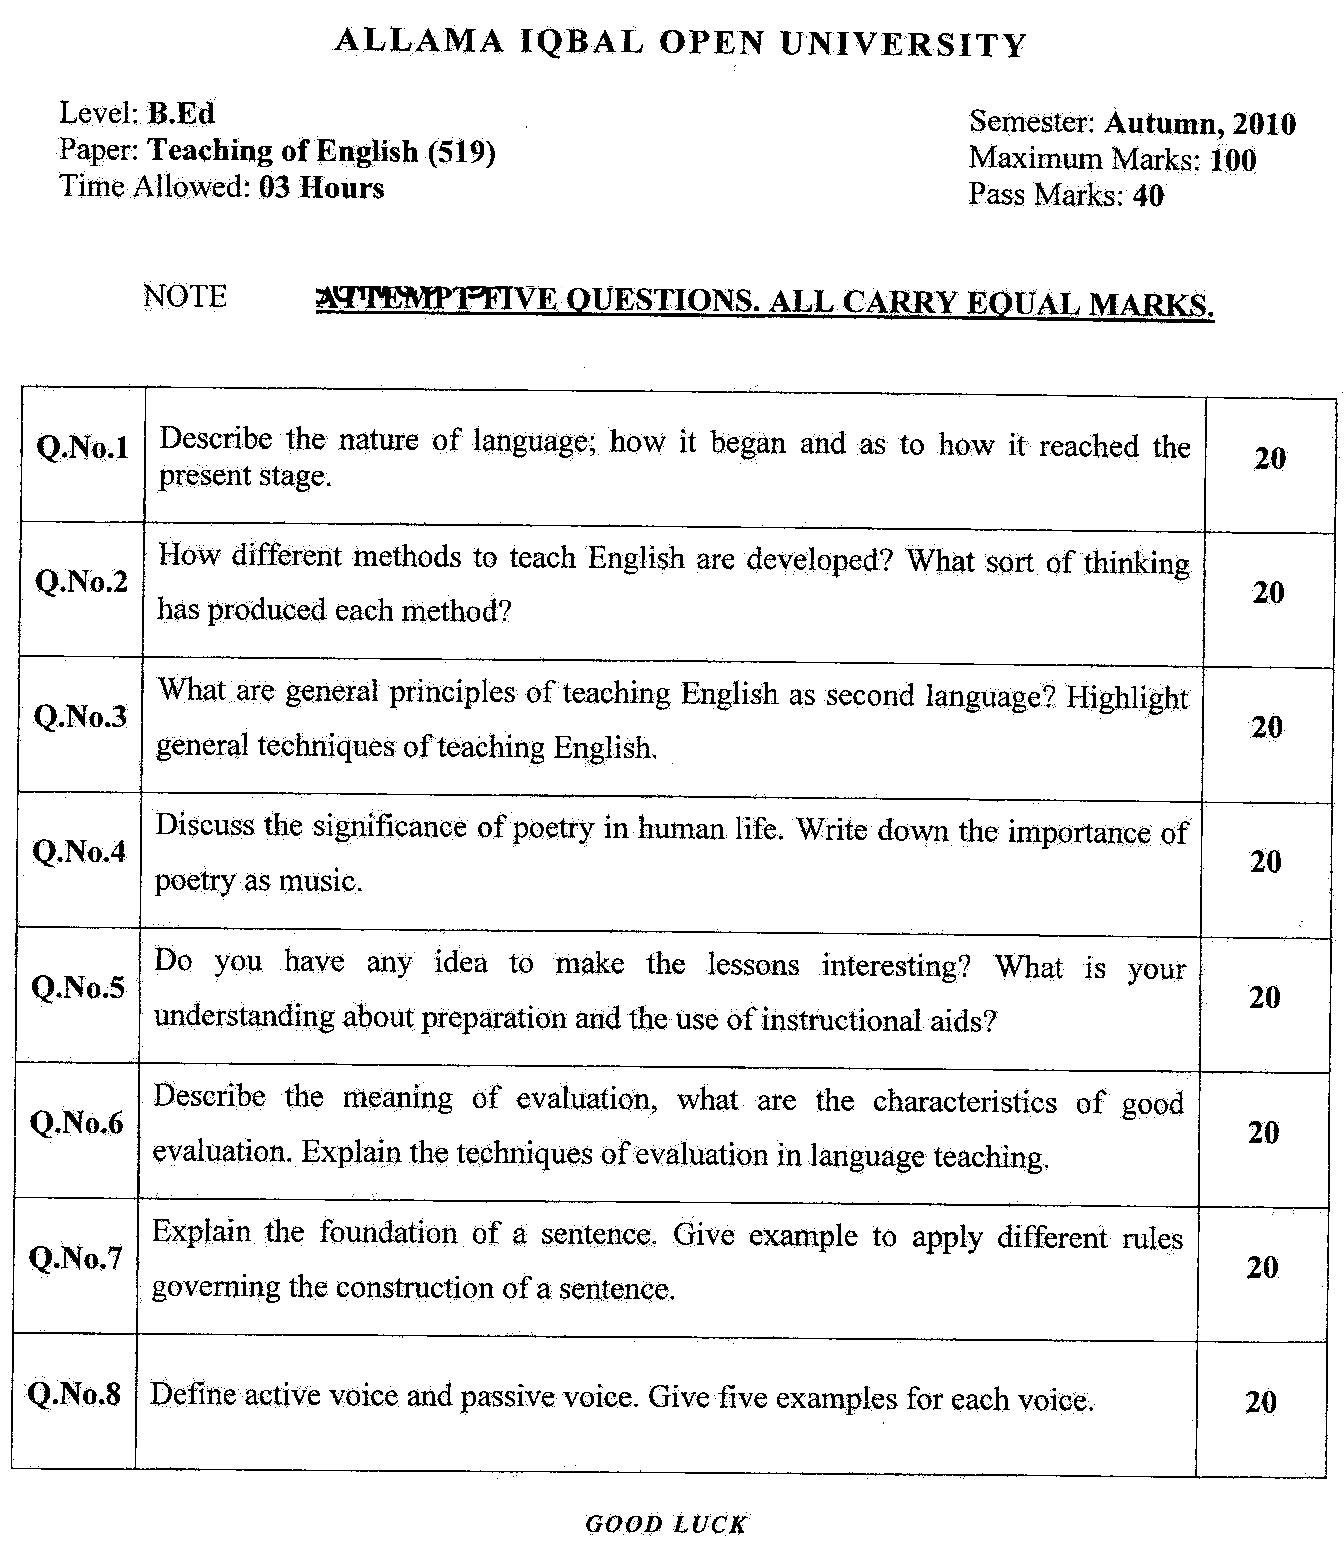 aiou bed teaching of english paper AIOU B.Ed Teaching of English Code 519 Past Paper 2010